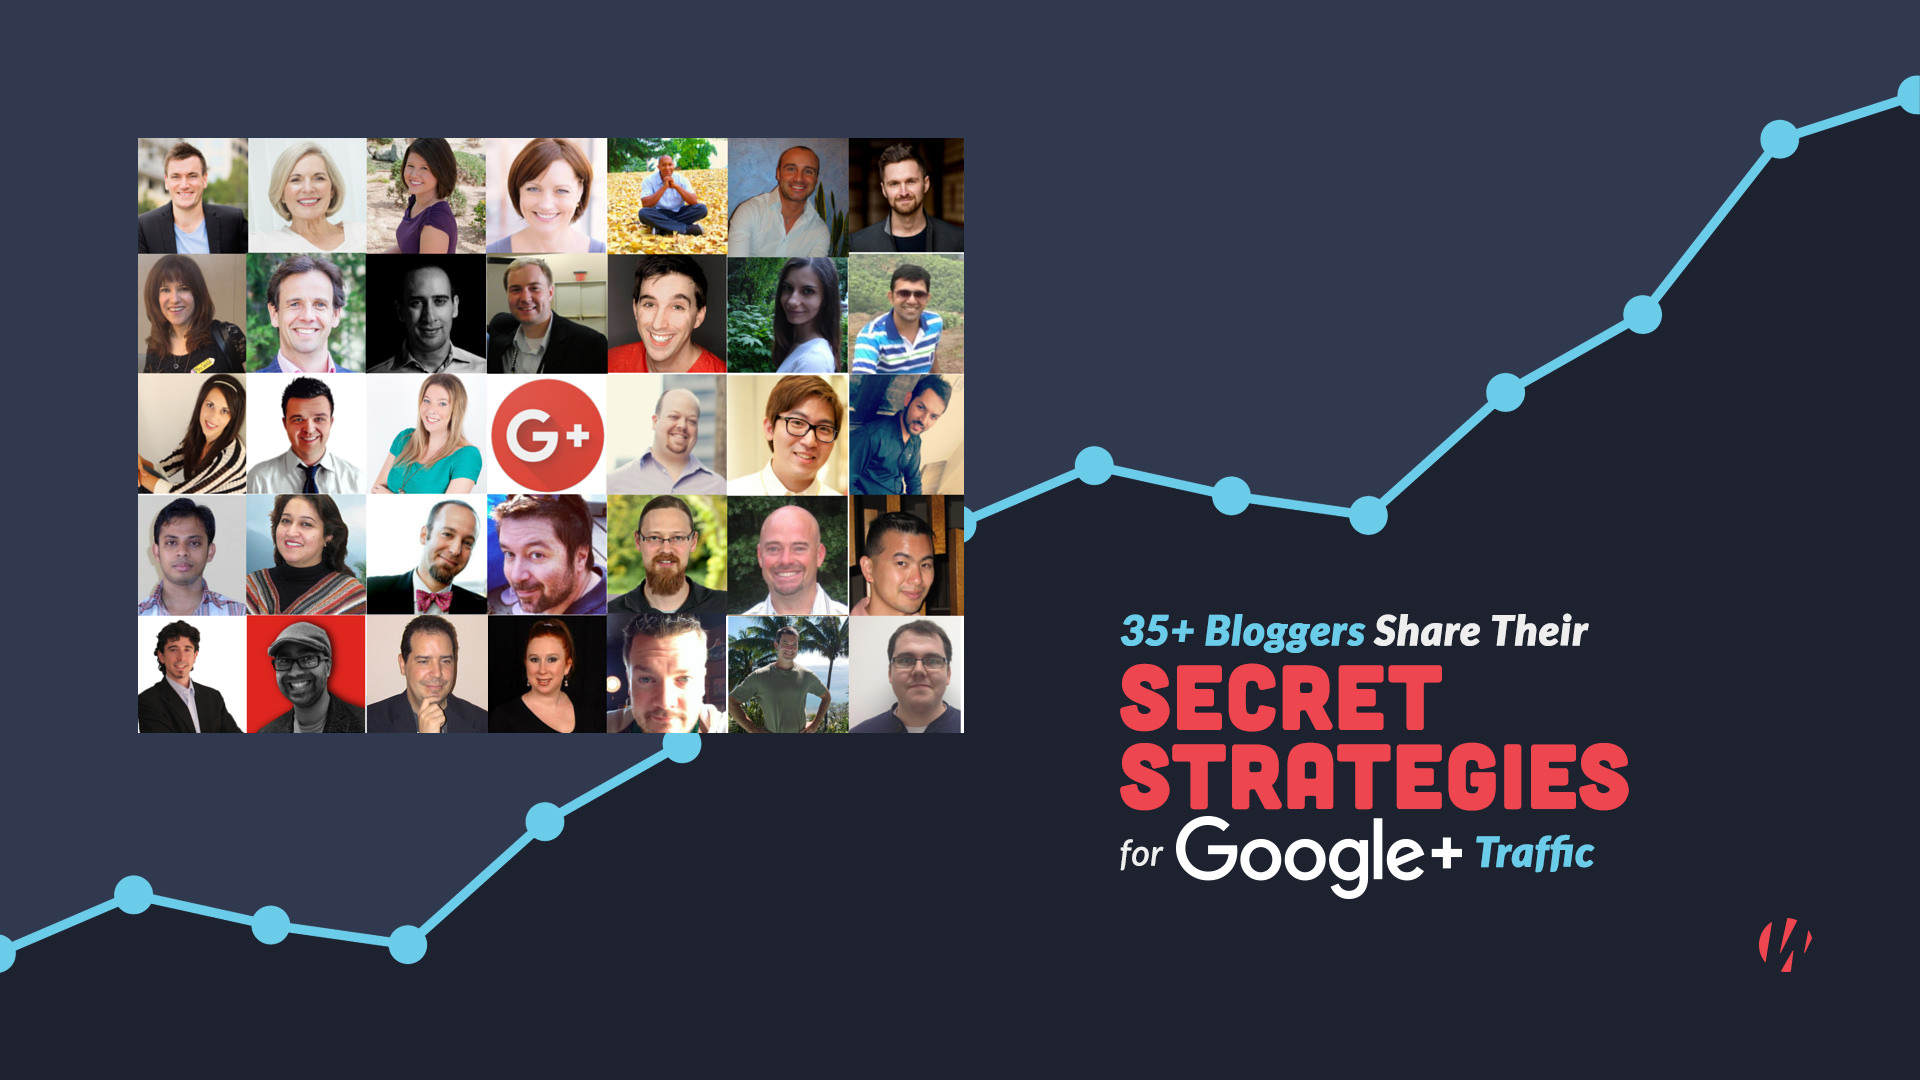 35+ Bloggers Share Their Top Secret Strategies for Google+ Traffic